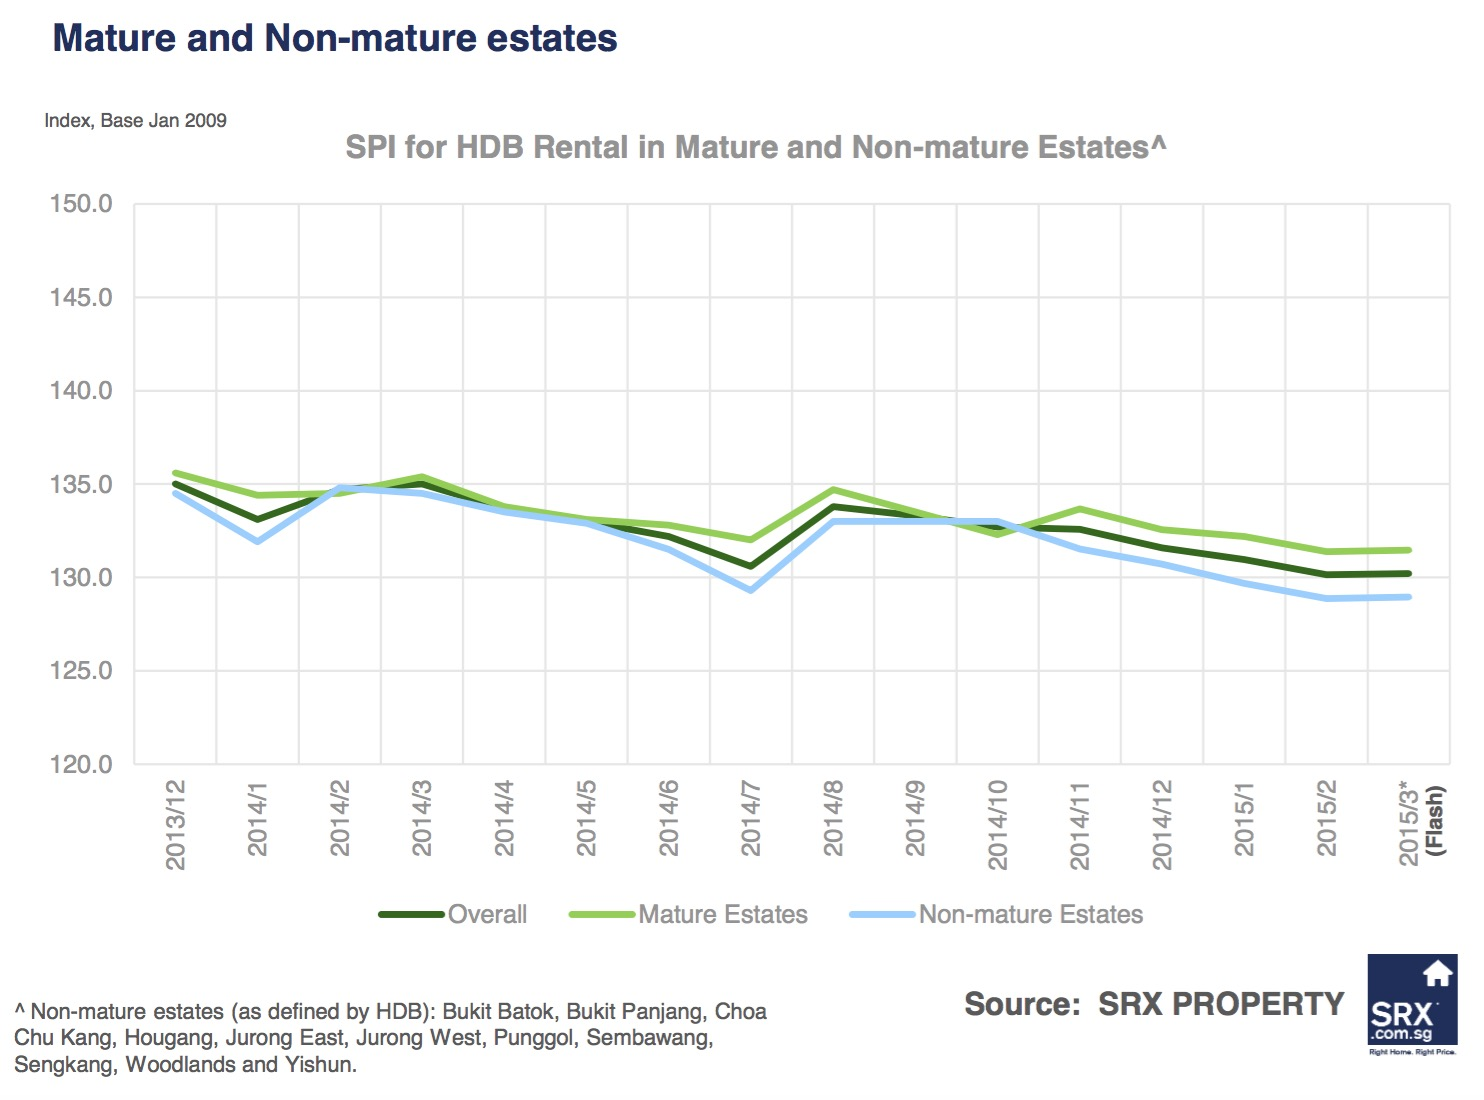 http://www.srx.com.sg/singapore-property-news/6832/non-landed-private-rents-down-volume-improved-in-march--2015